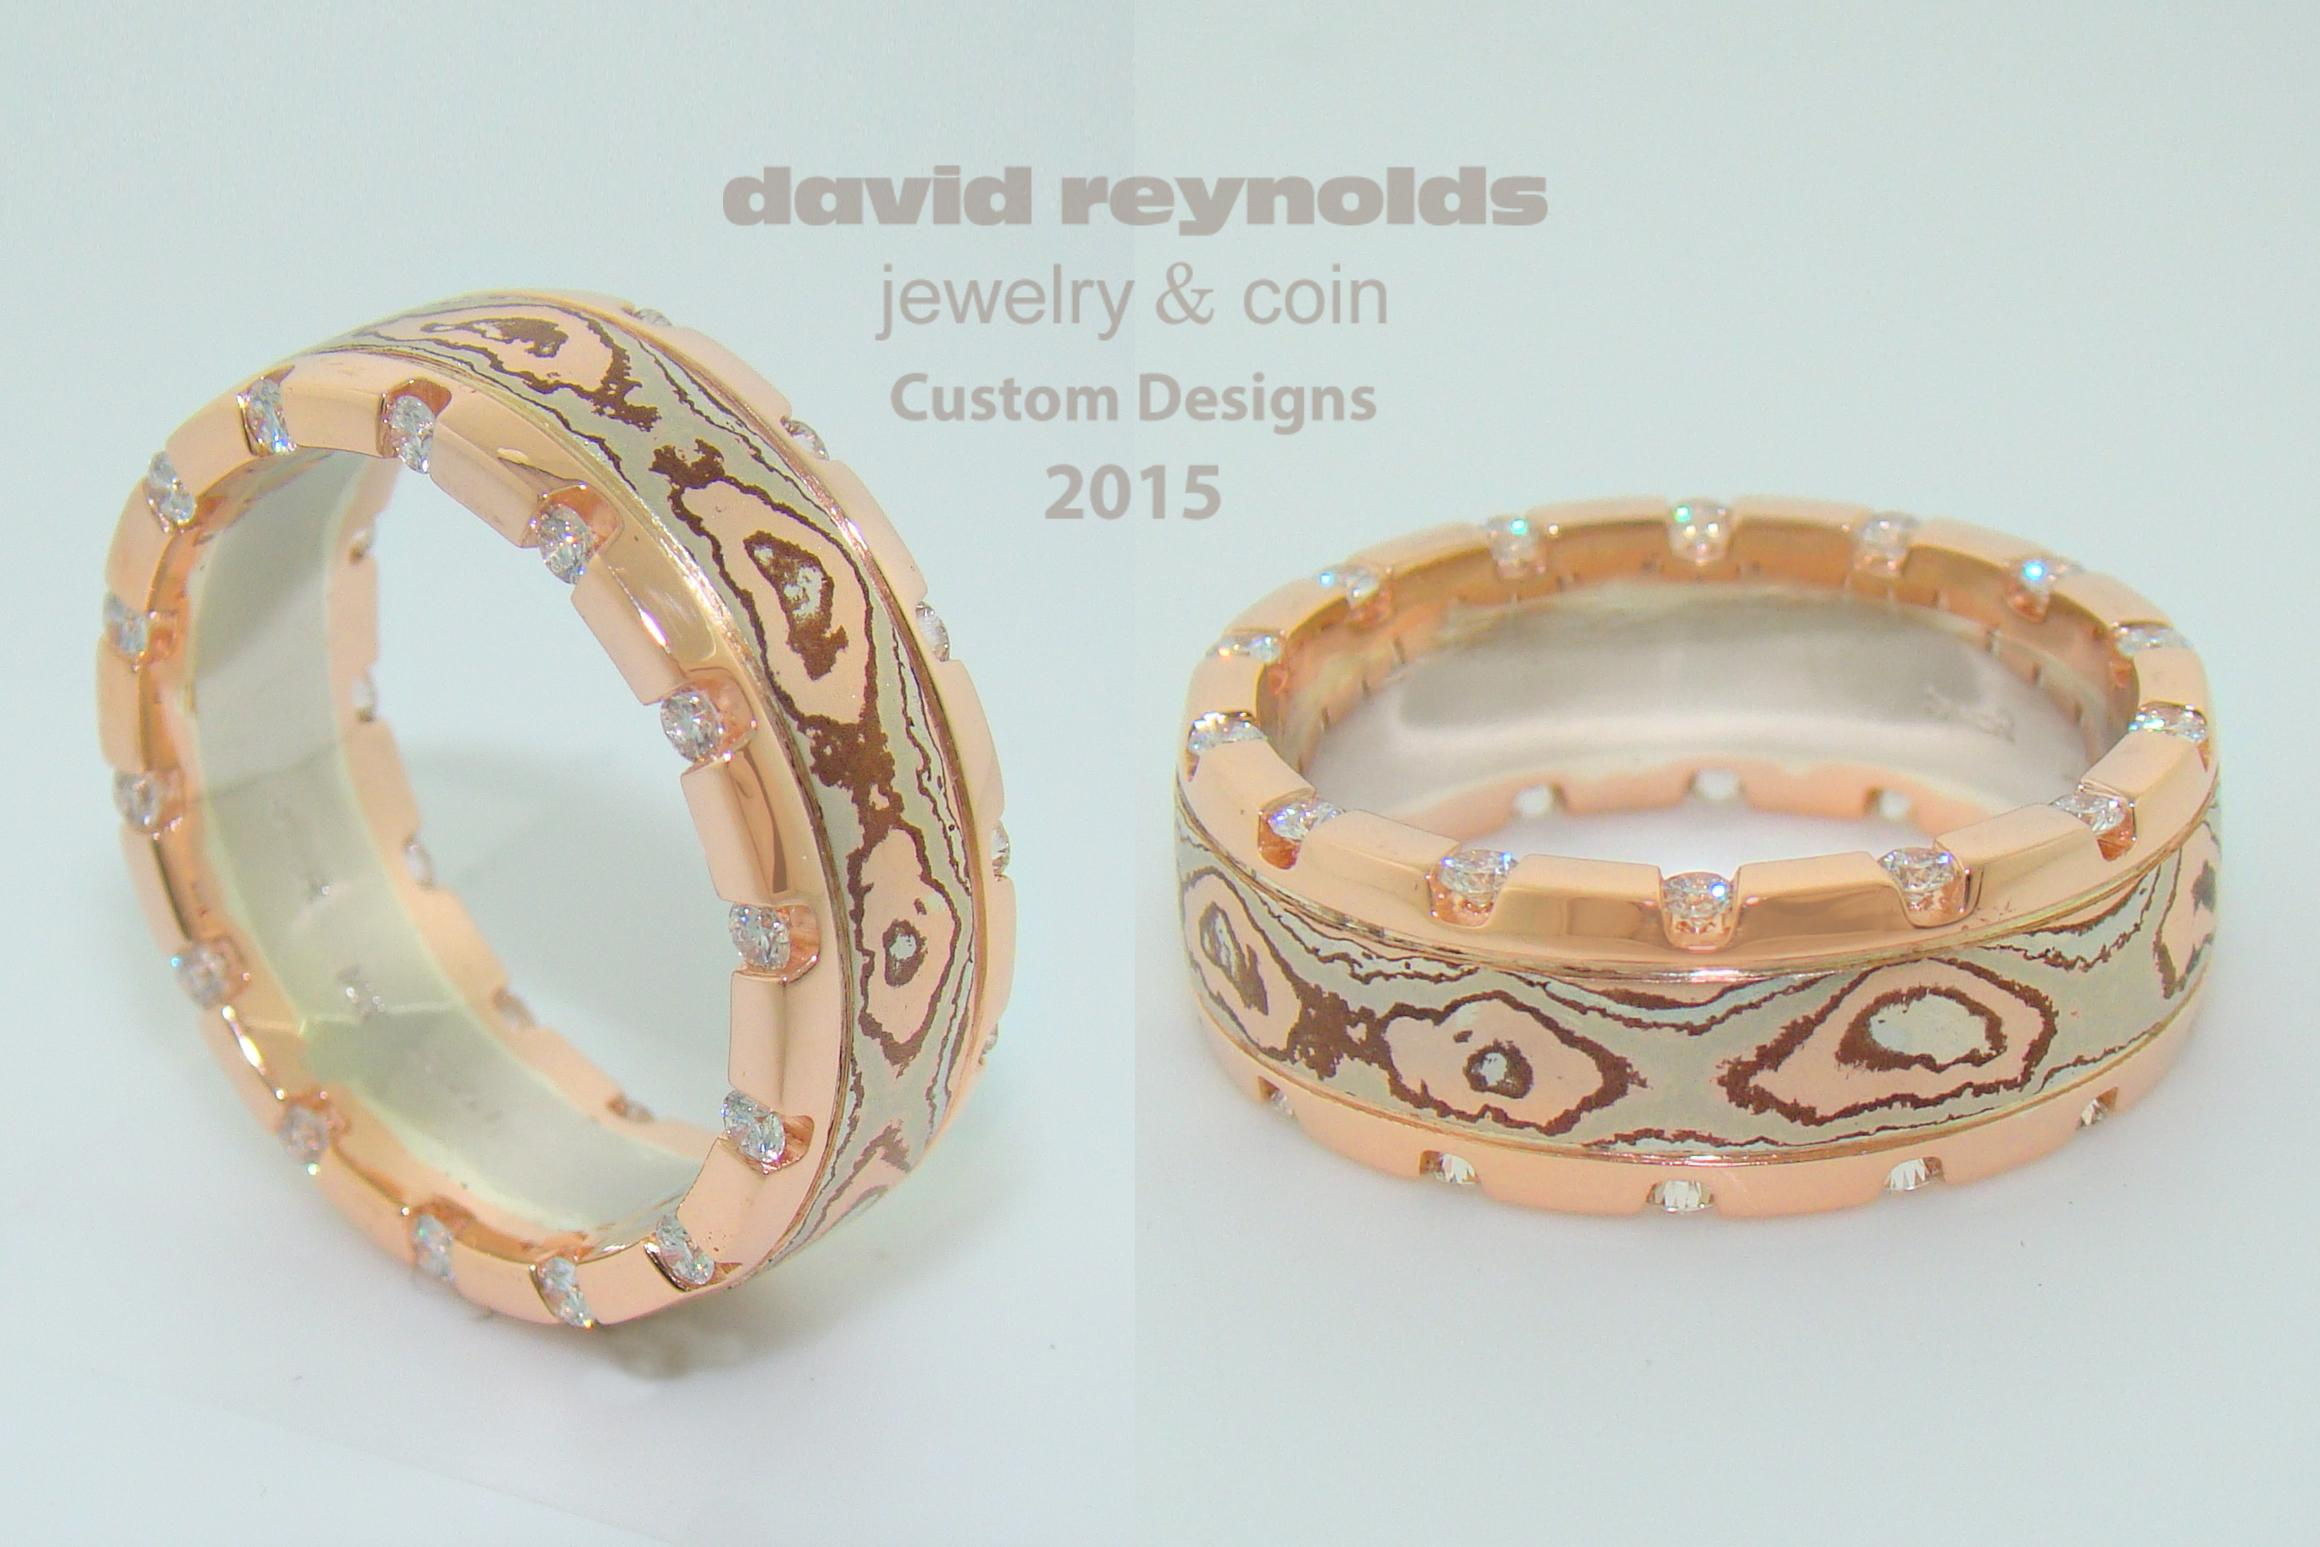 david reynolds jewelry and coin st petersburg fl